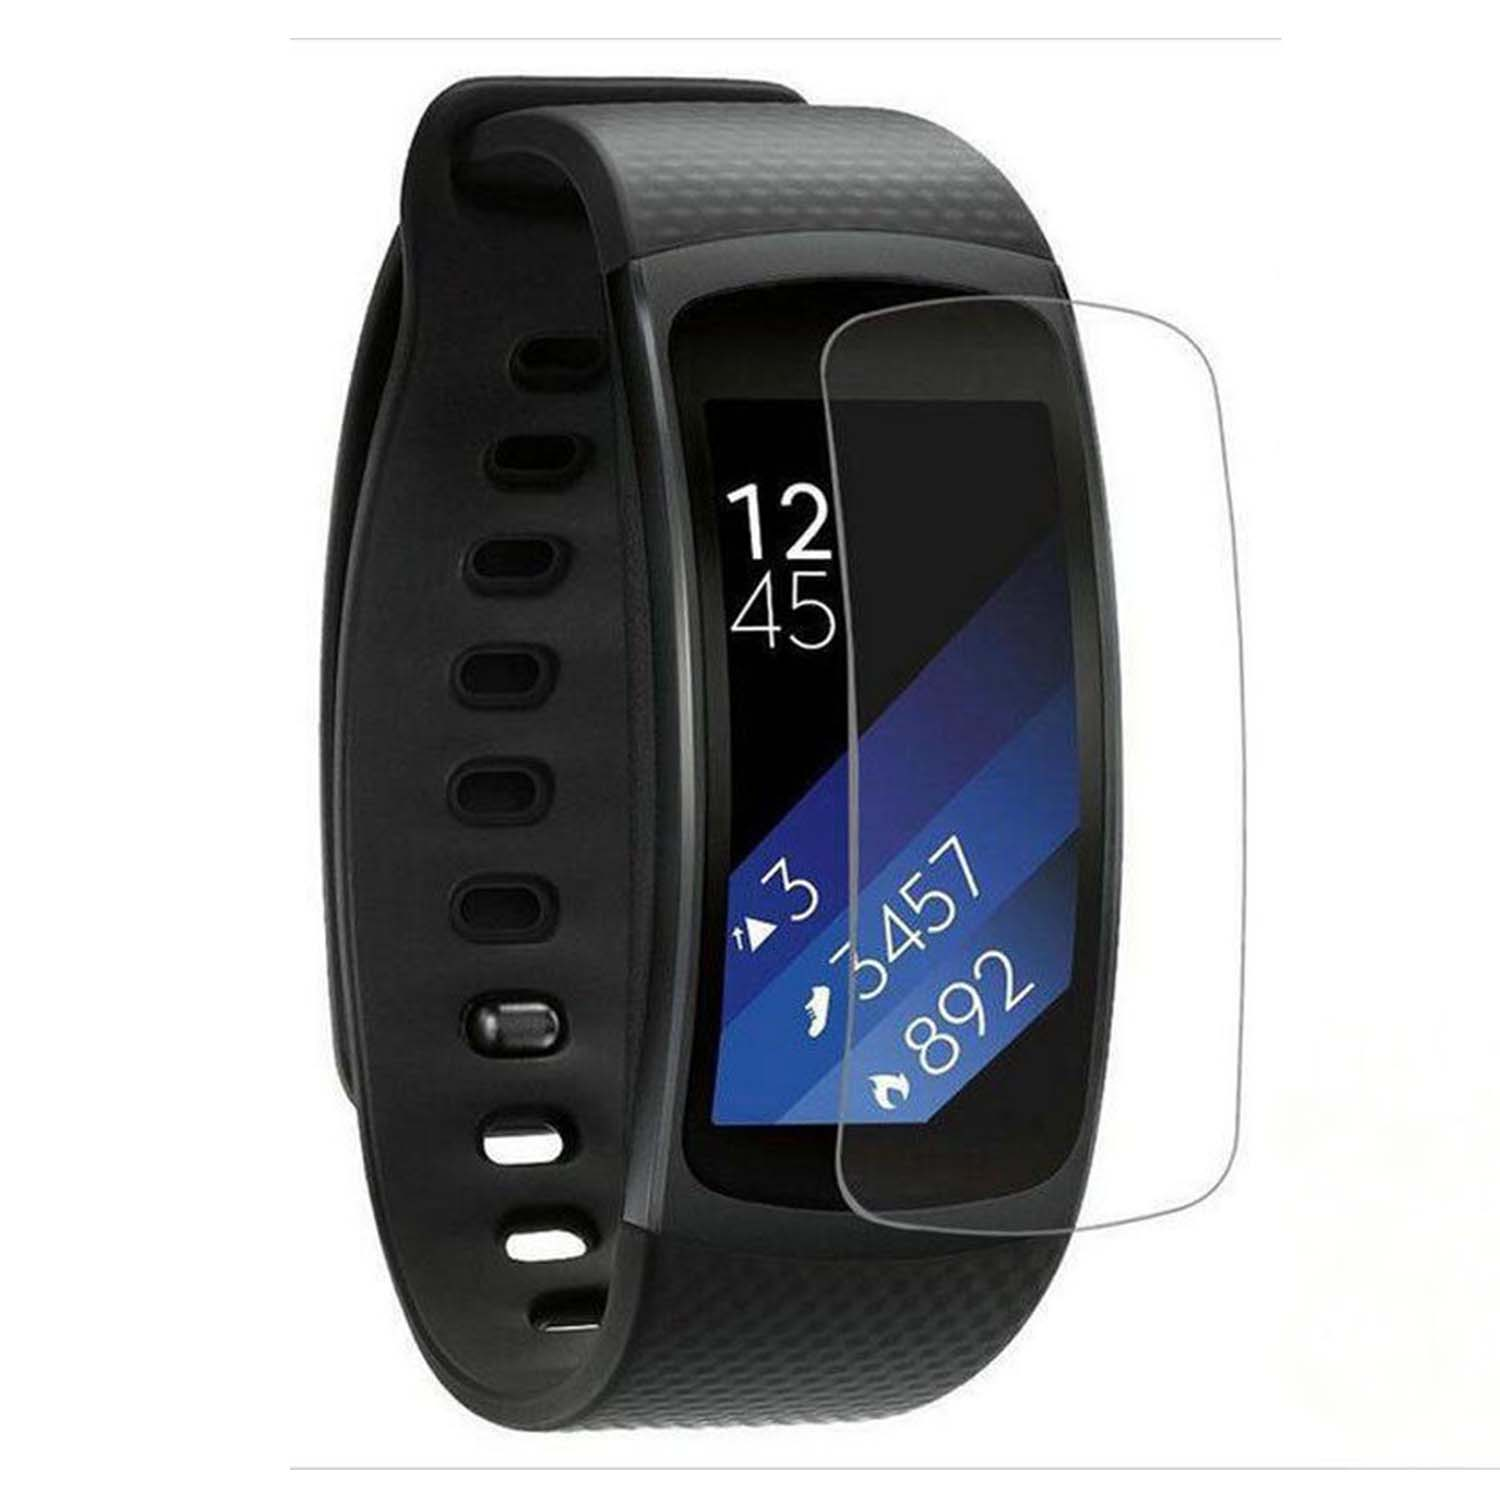 screen protector for samsung gear fit 2 pro strapsco